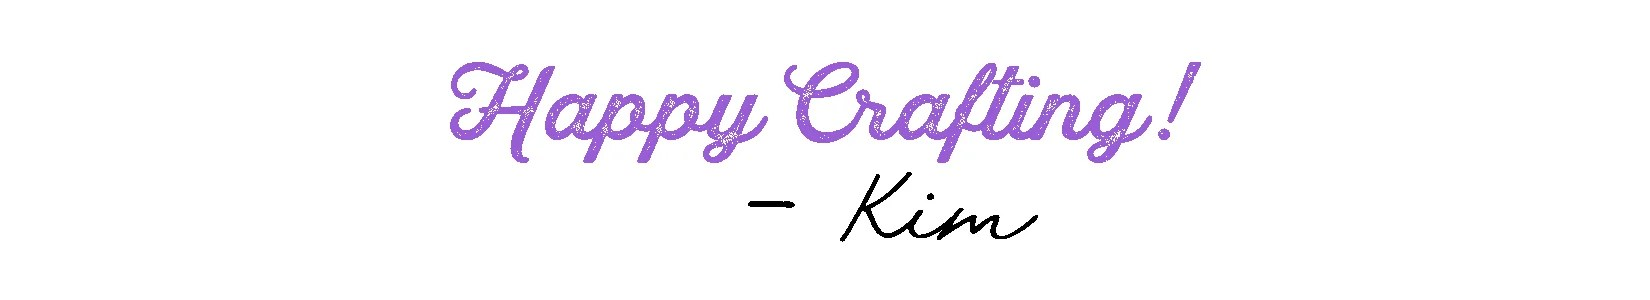 Happy Crafting! -Kim